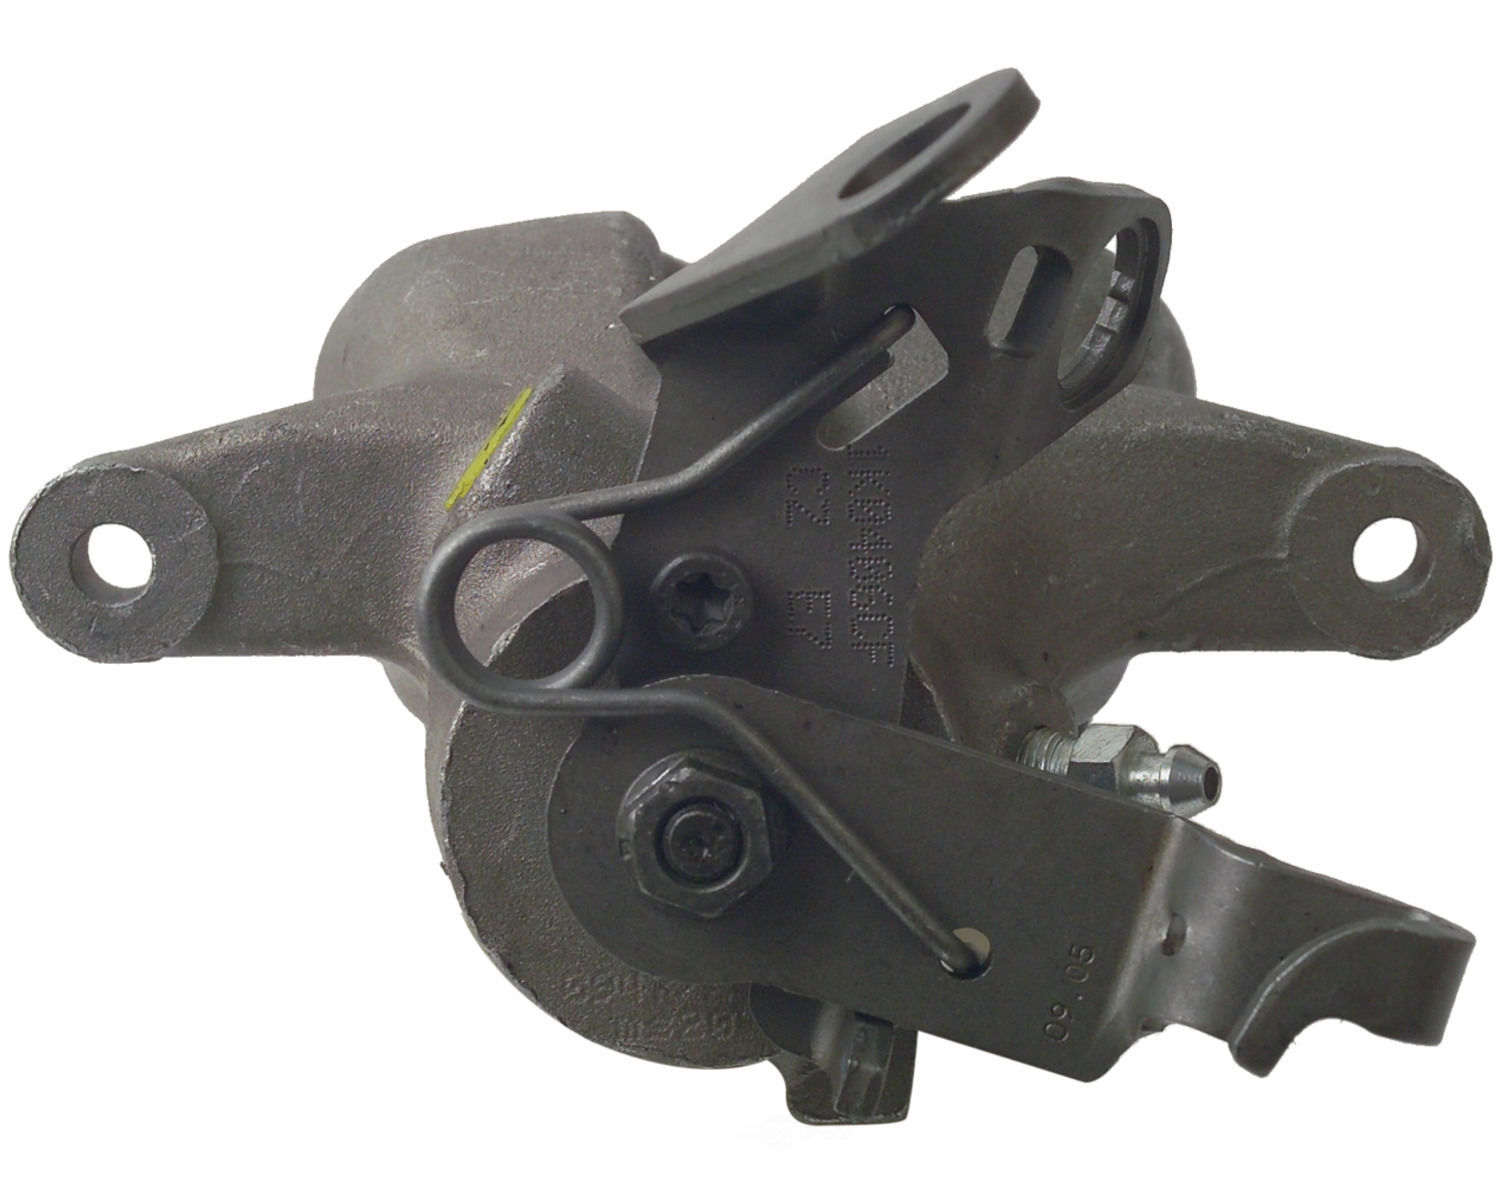 CARDONE/A-1 CARDONE - Reman. A-1 CARDONE Friction Choice Caliper (Rear Right) - A1C 19-2977